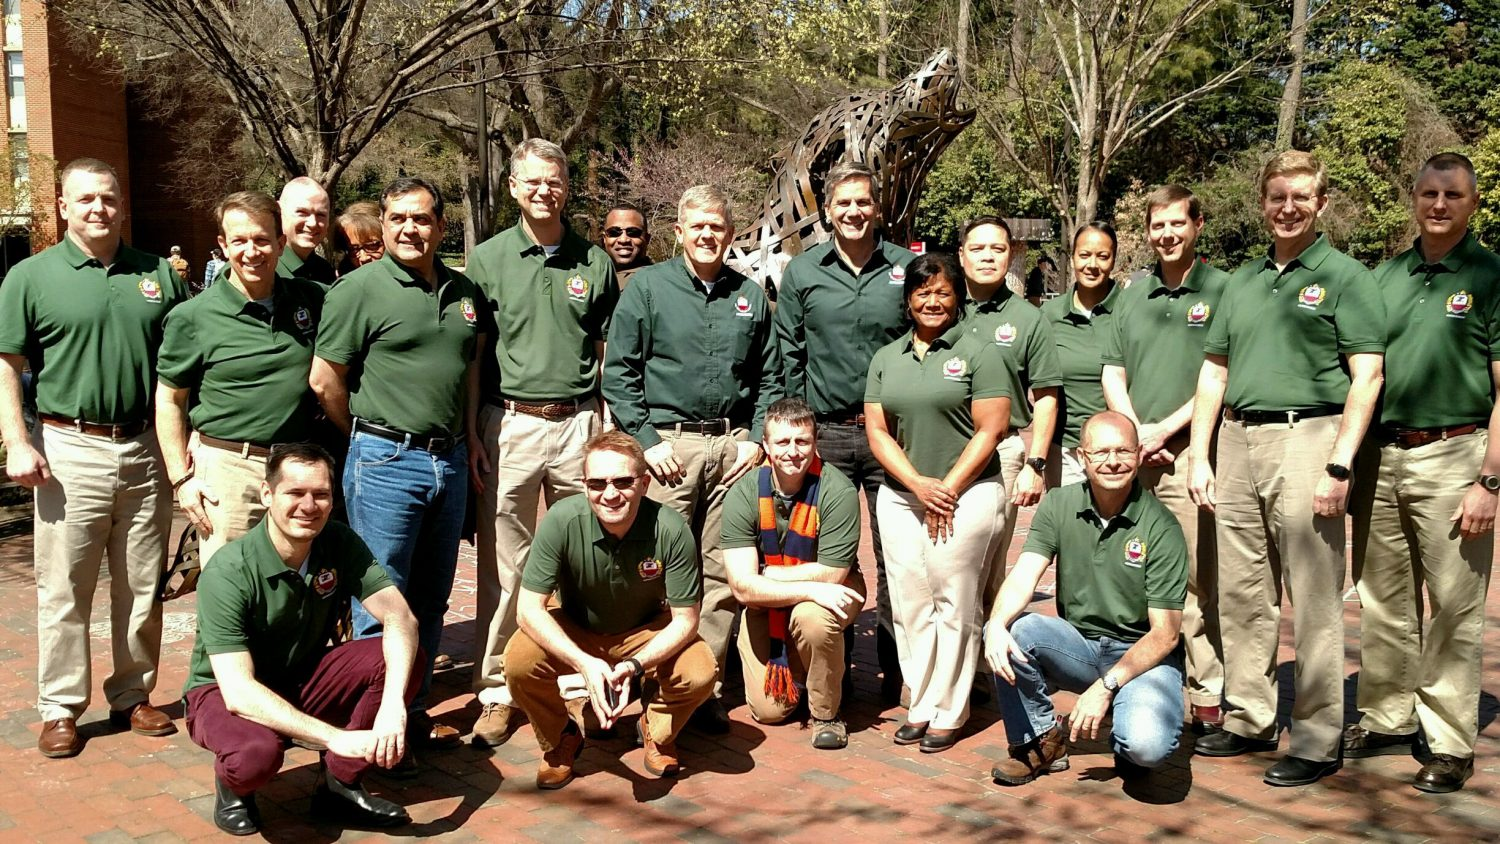 The Eisenhower School's Agribusiness Industry Study Group posing in front of a wolf statue